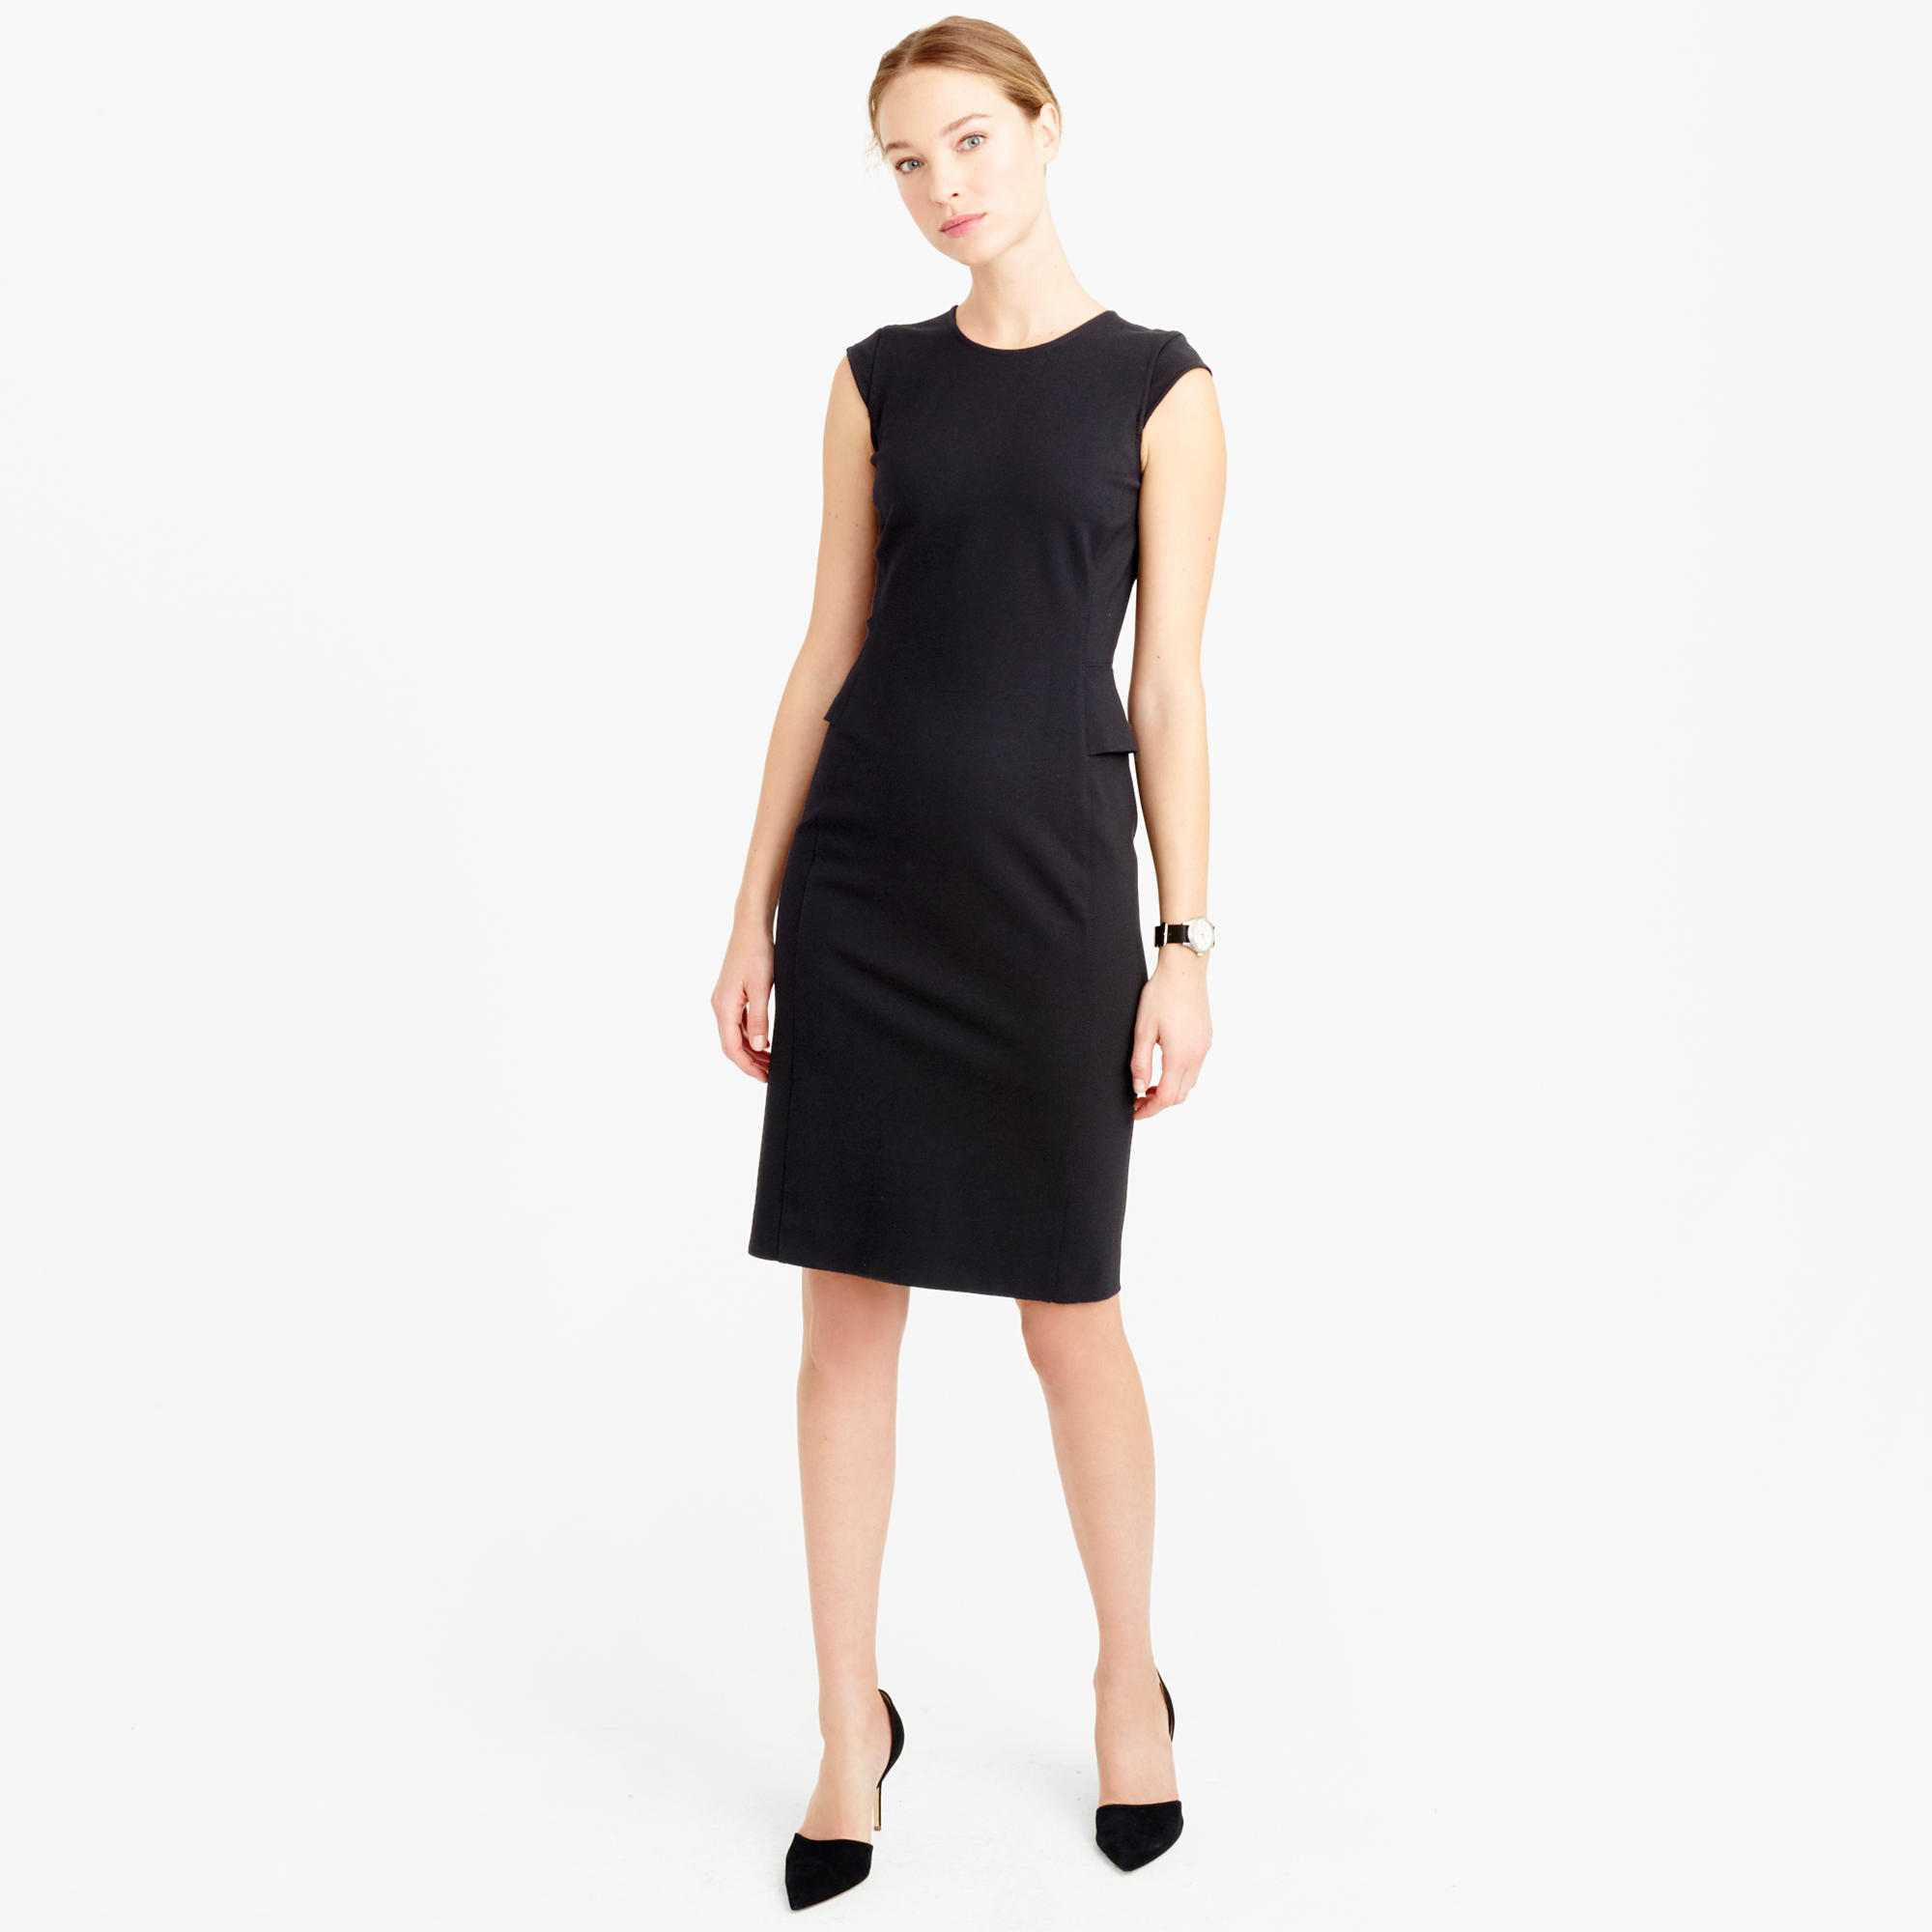 petite interview dress women suiting j crew petite interview dress